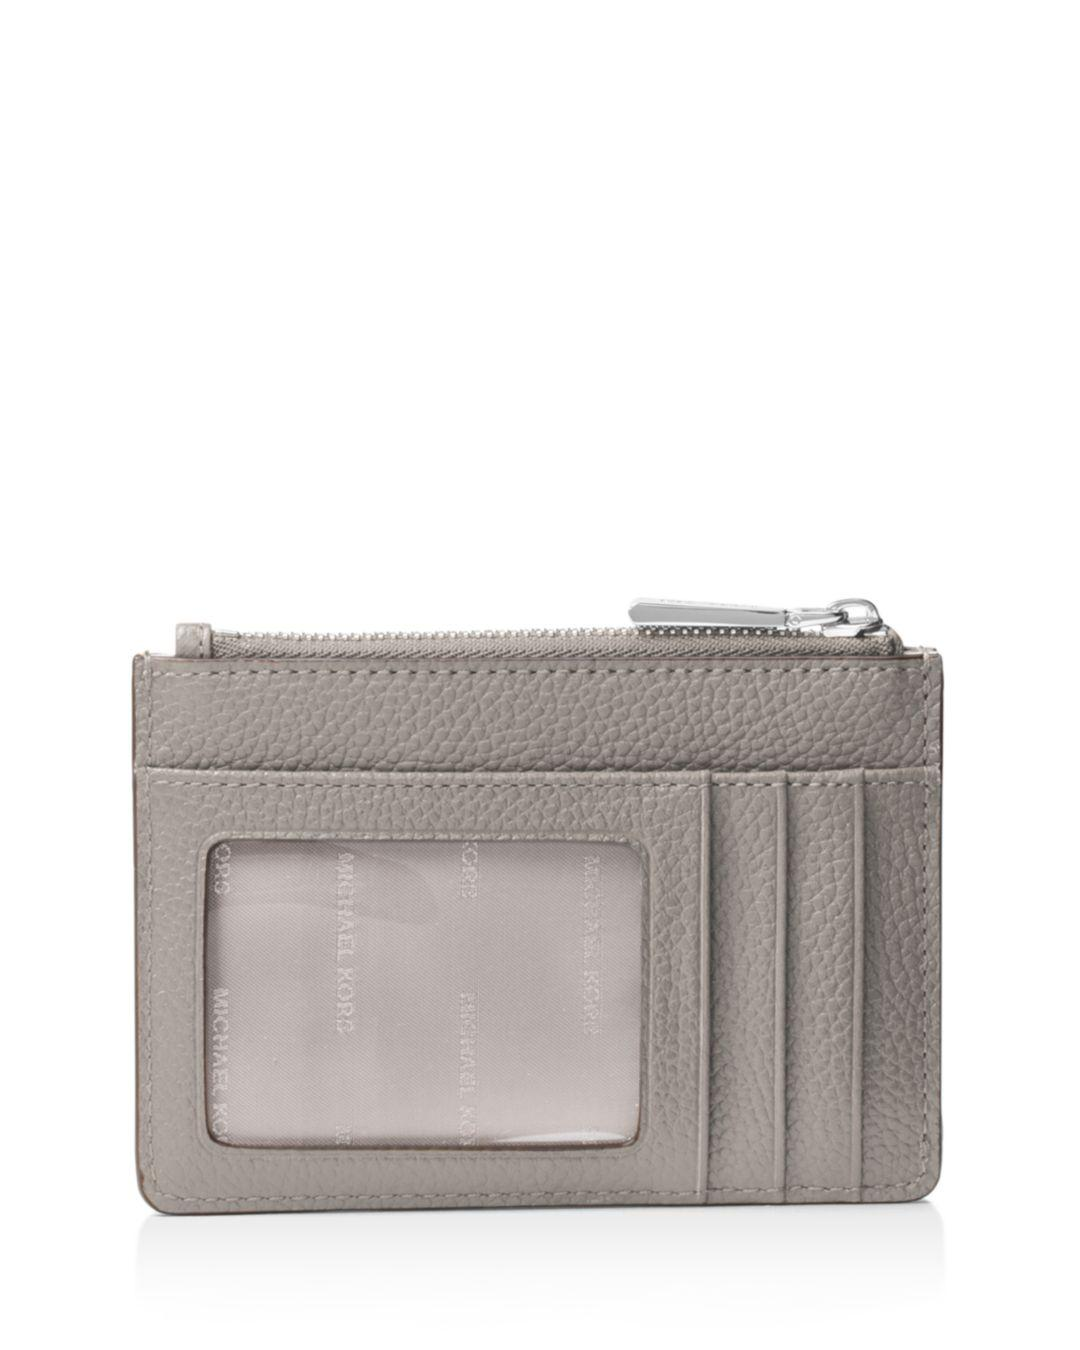 831677b133a3 Lyst - Michael Kors Michael Mercer Pebble Leather Coin Purse in Gray